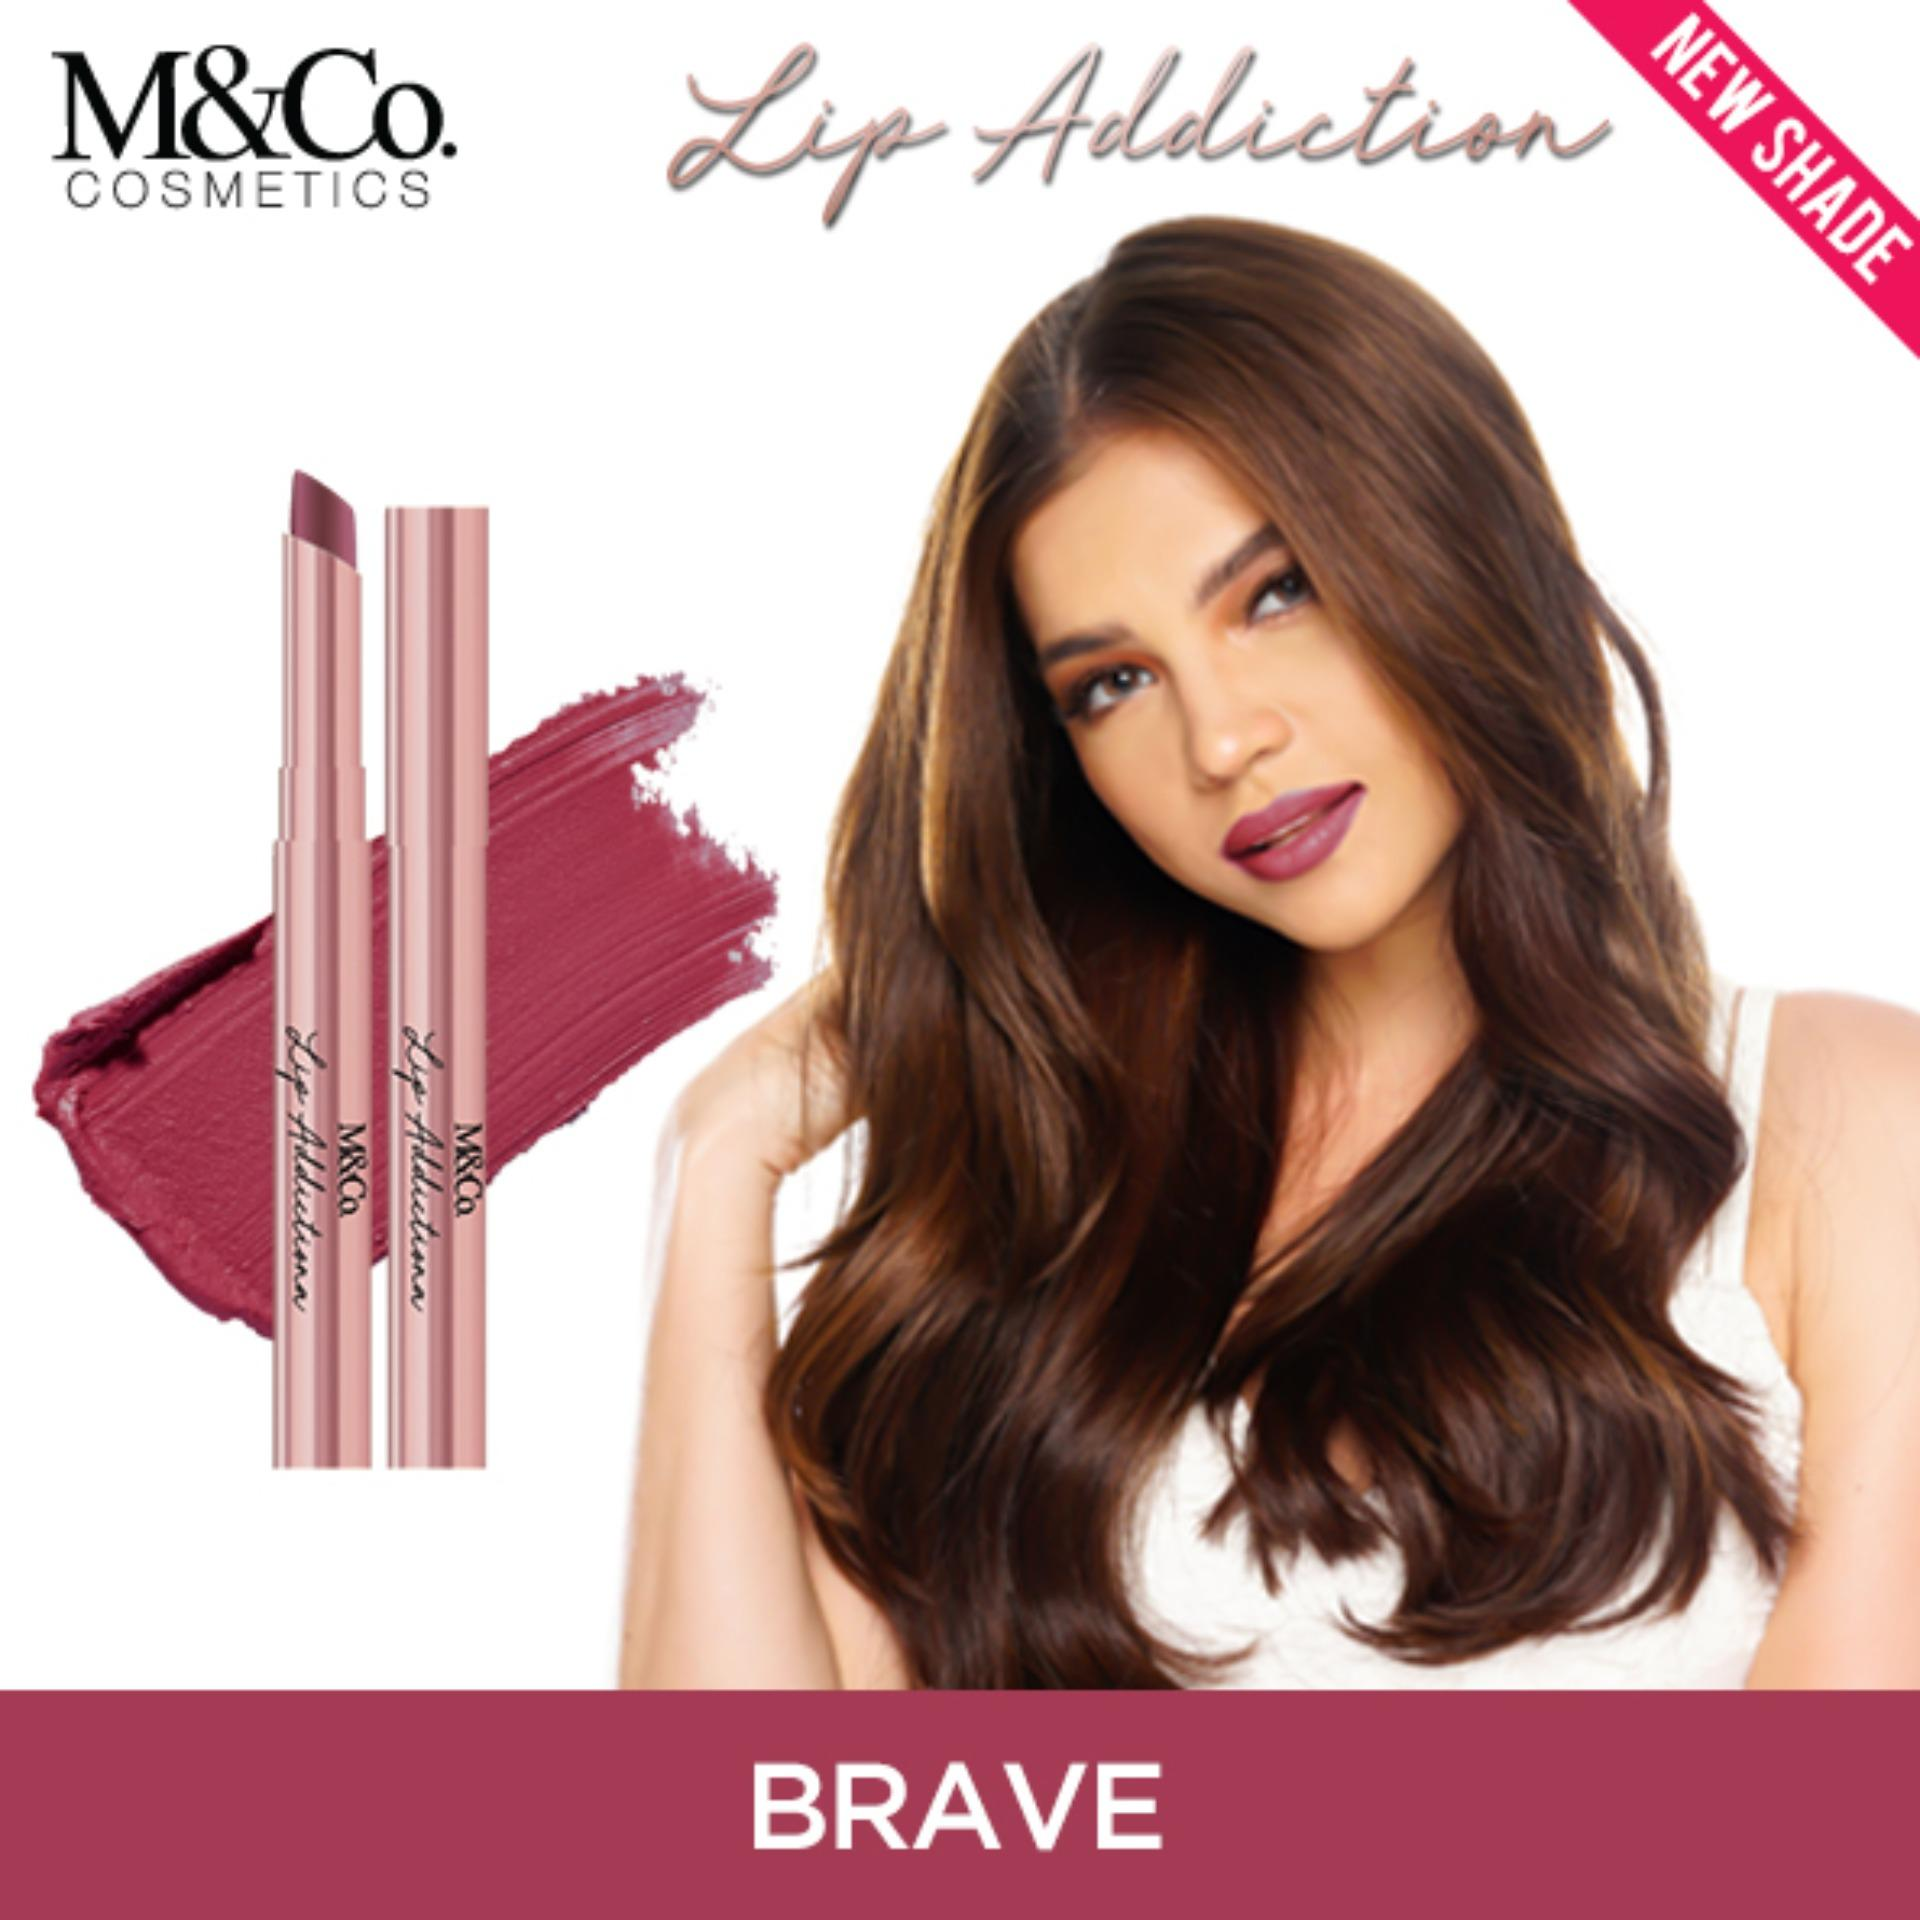 M&Co.Cosmetics LIP ADDICTION Creamy Matte Lipstick – BRAVE Philippines